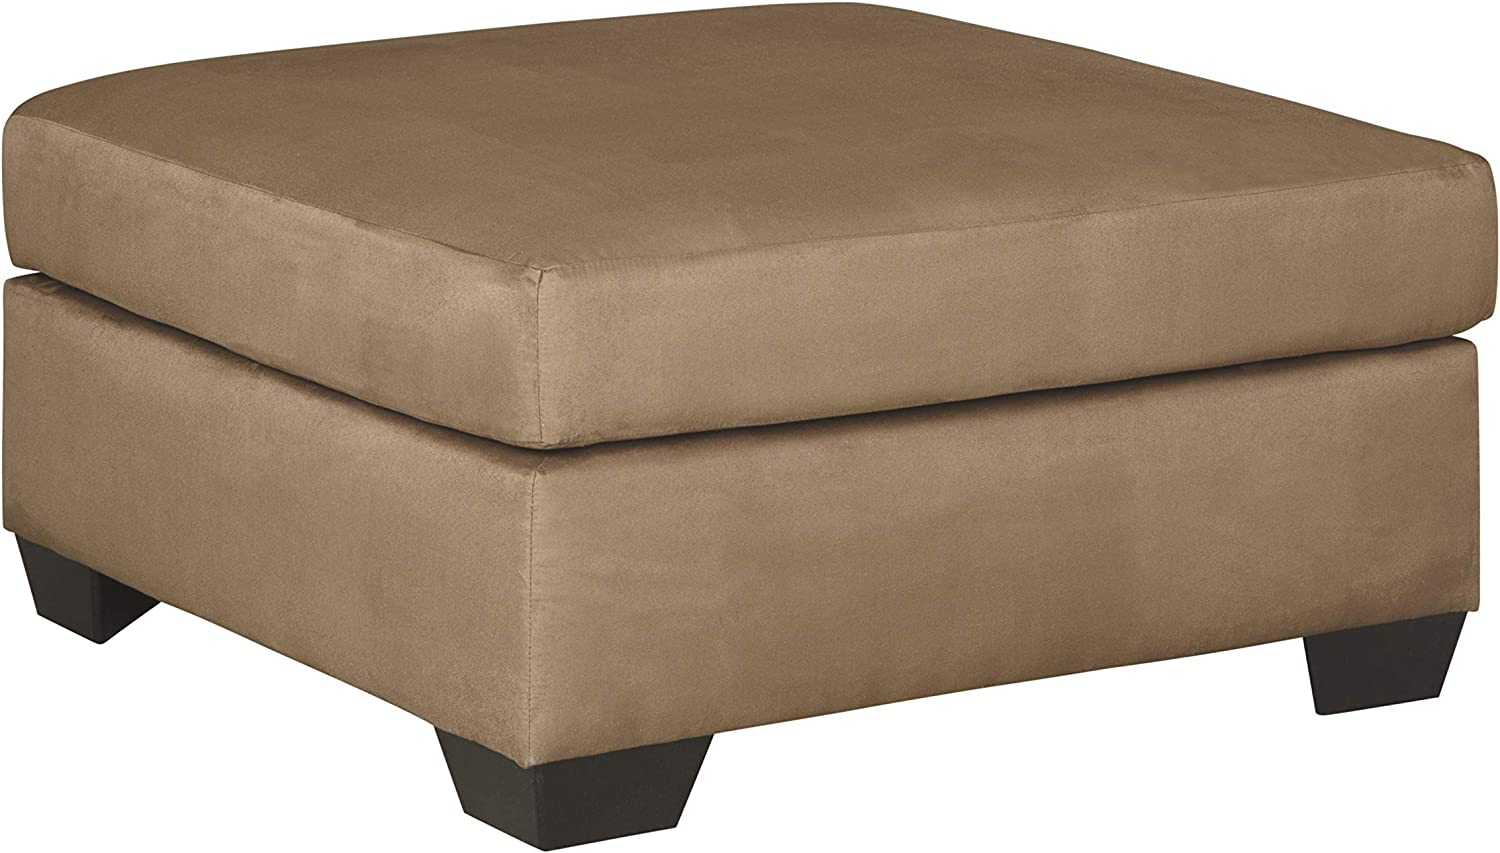 Signature Design by Ashley - Darcy Contemporary Oversized Accent Ottoman, Light Brown